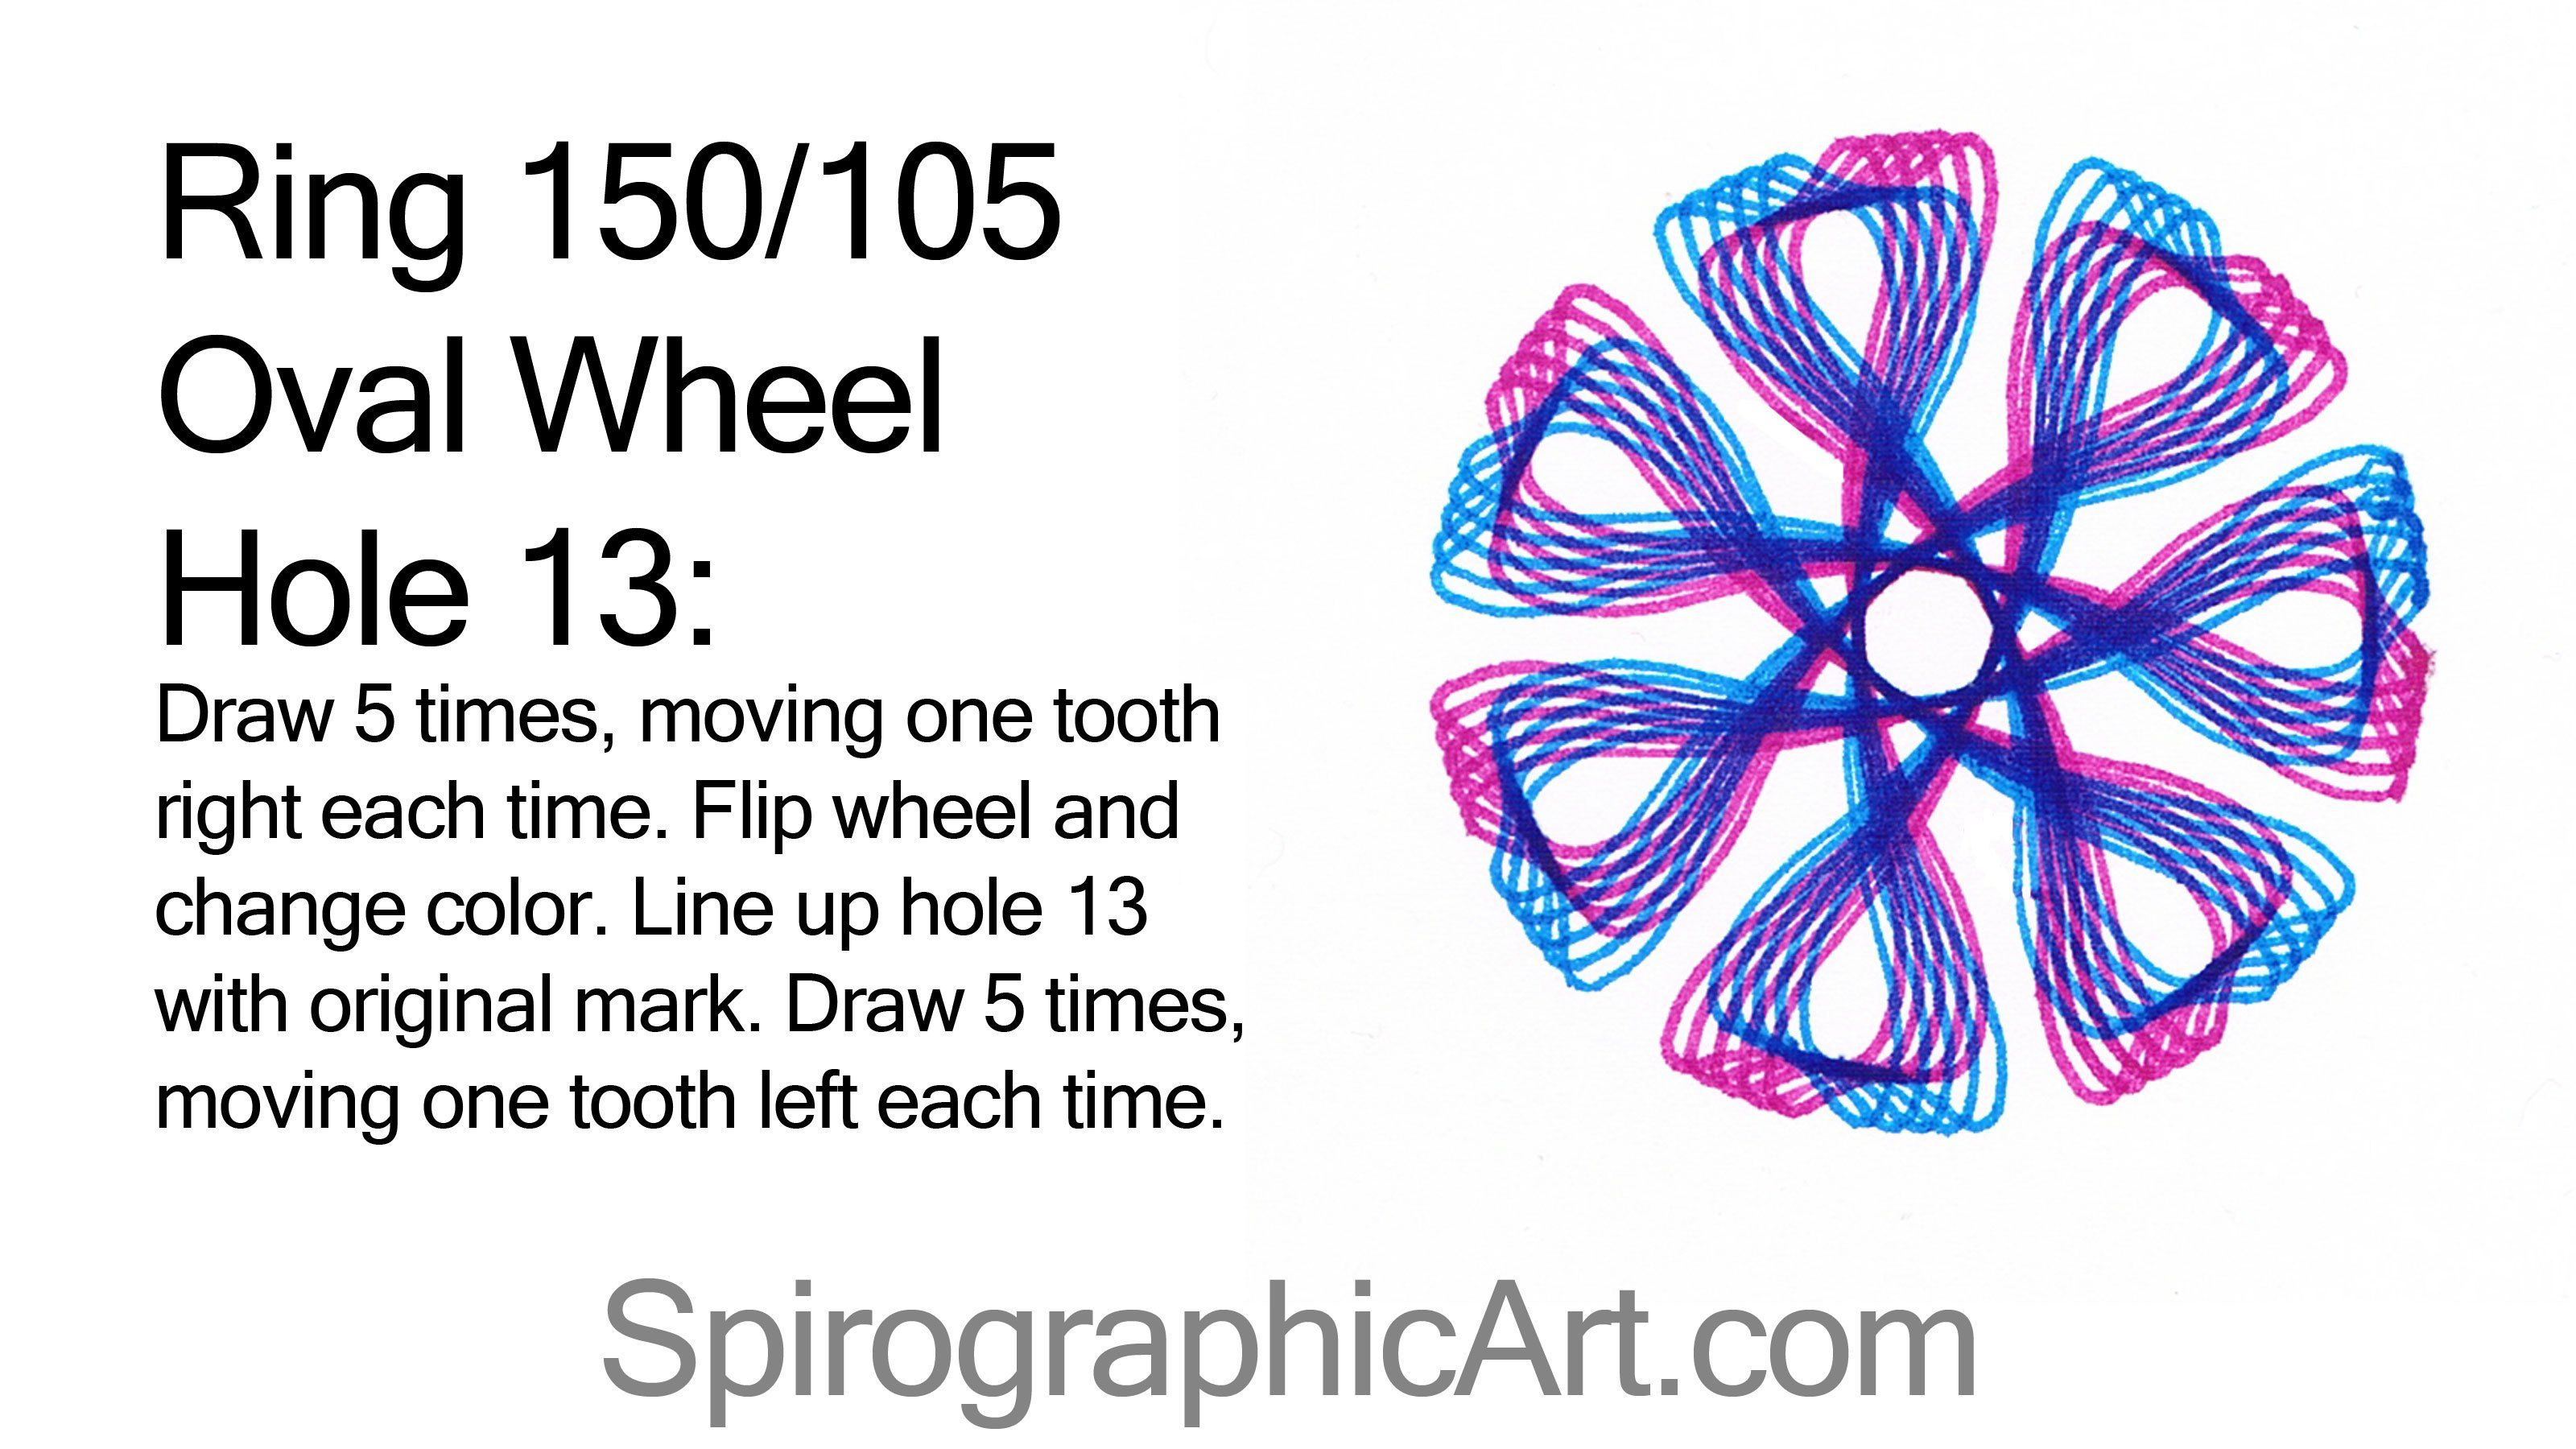 Spirograph Tips and How-to's - SpiroGraphicArt